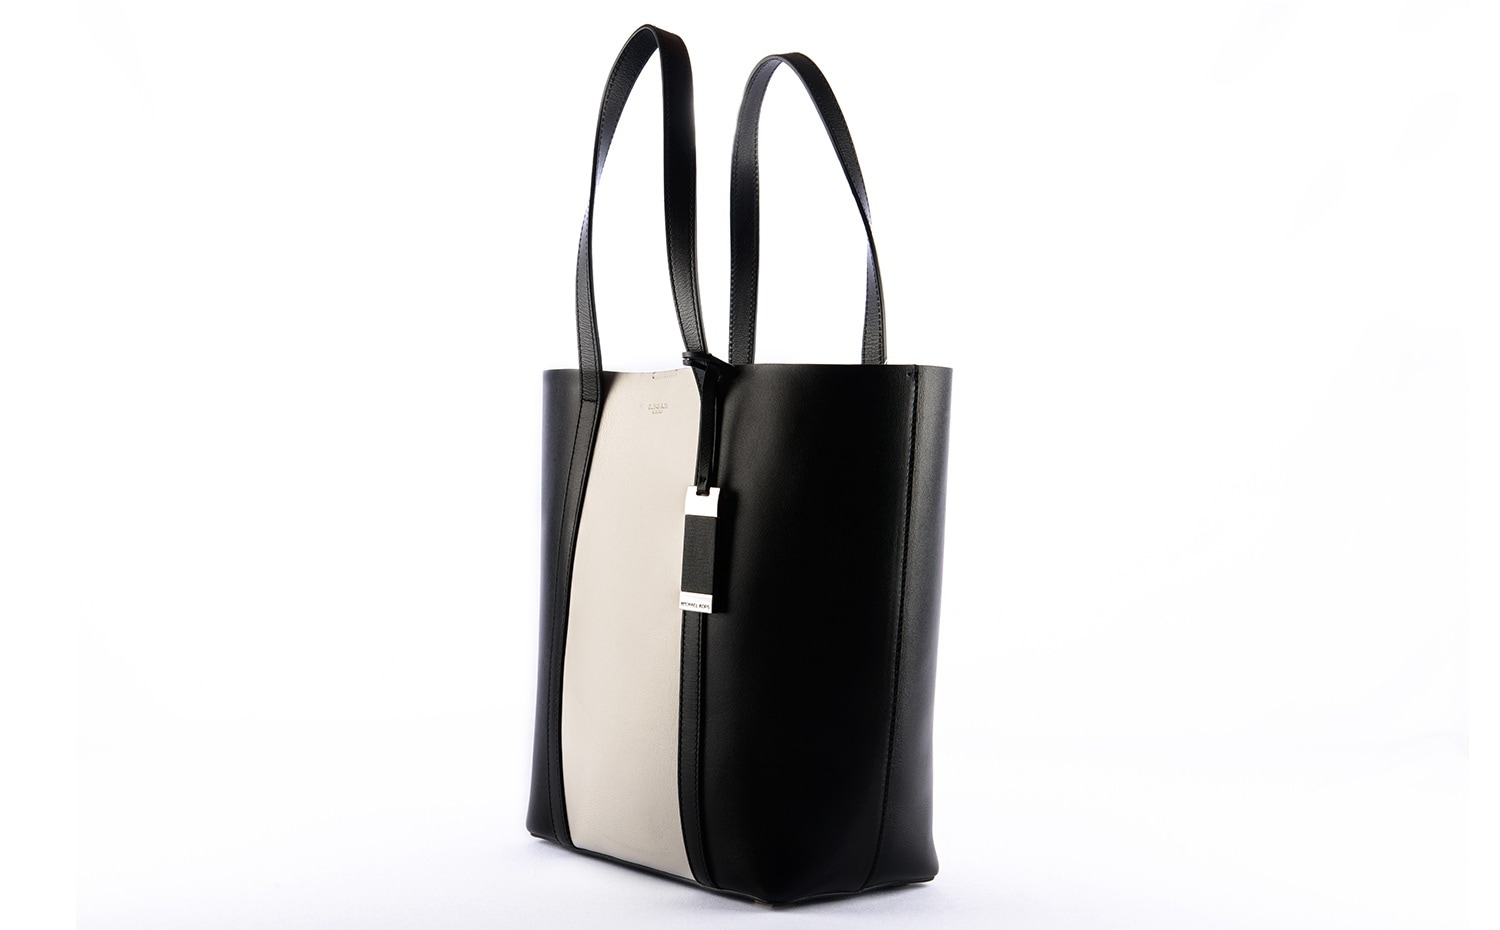 Michael Kors: Bridget Large Color-block Palmellato Tote